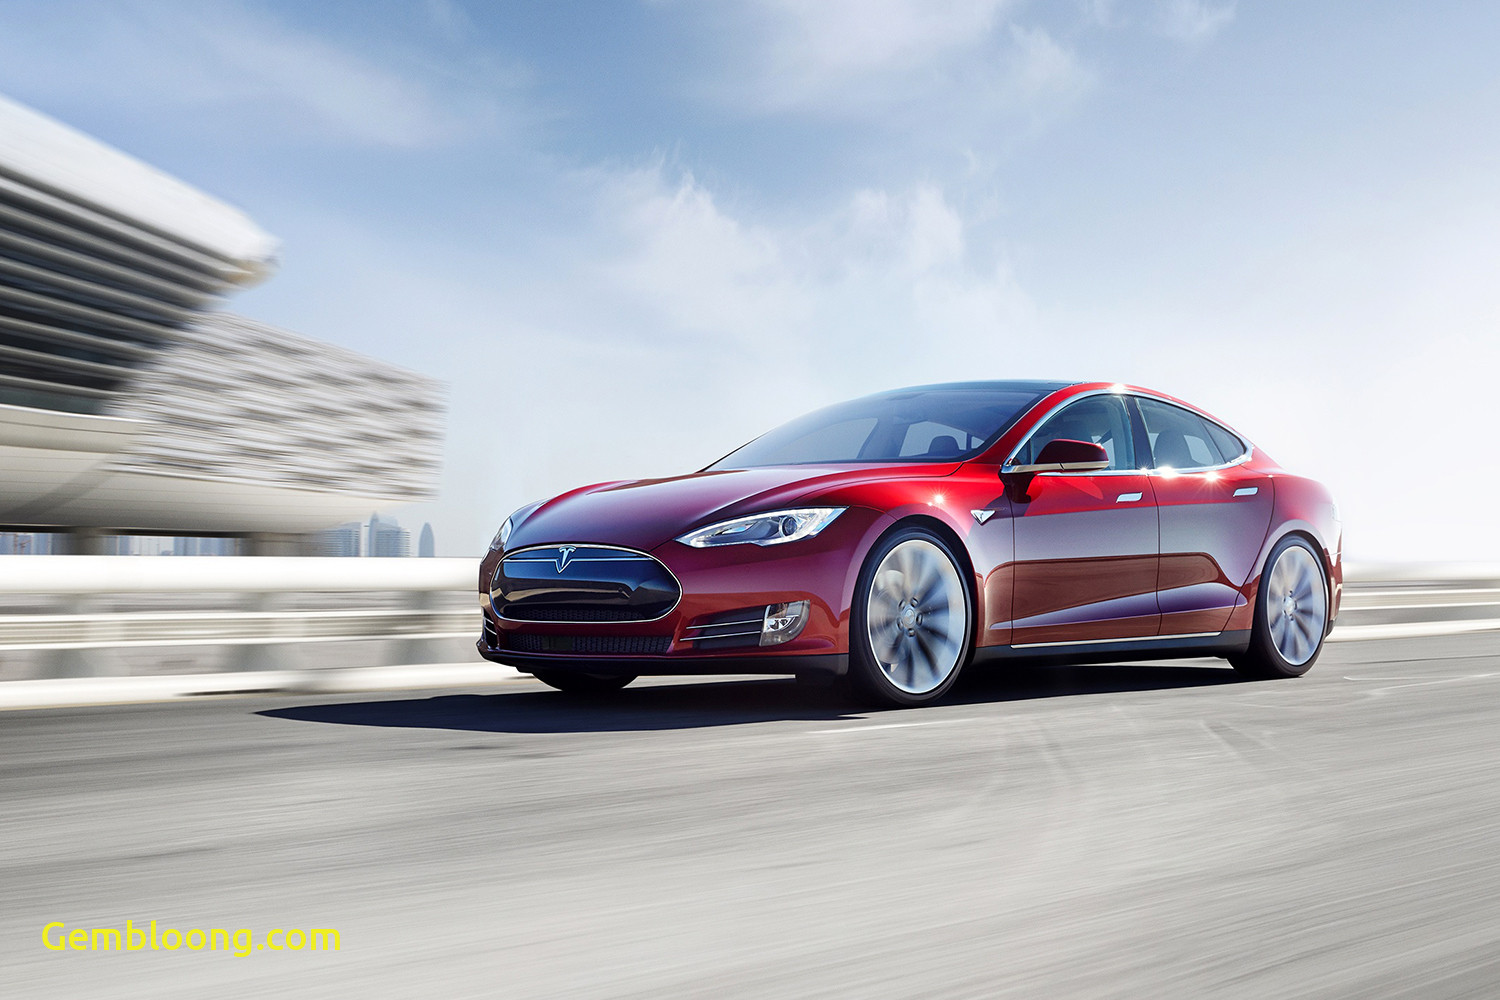 Which Tesla Model is the Fastest Inspirational with Its New Battery Teslas Model S is now the Third